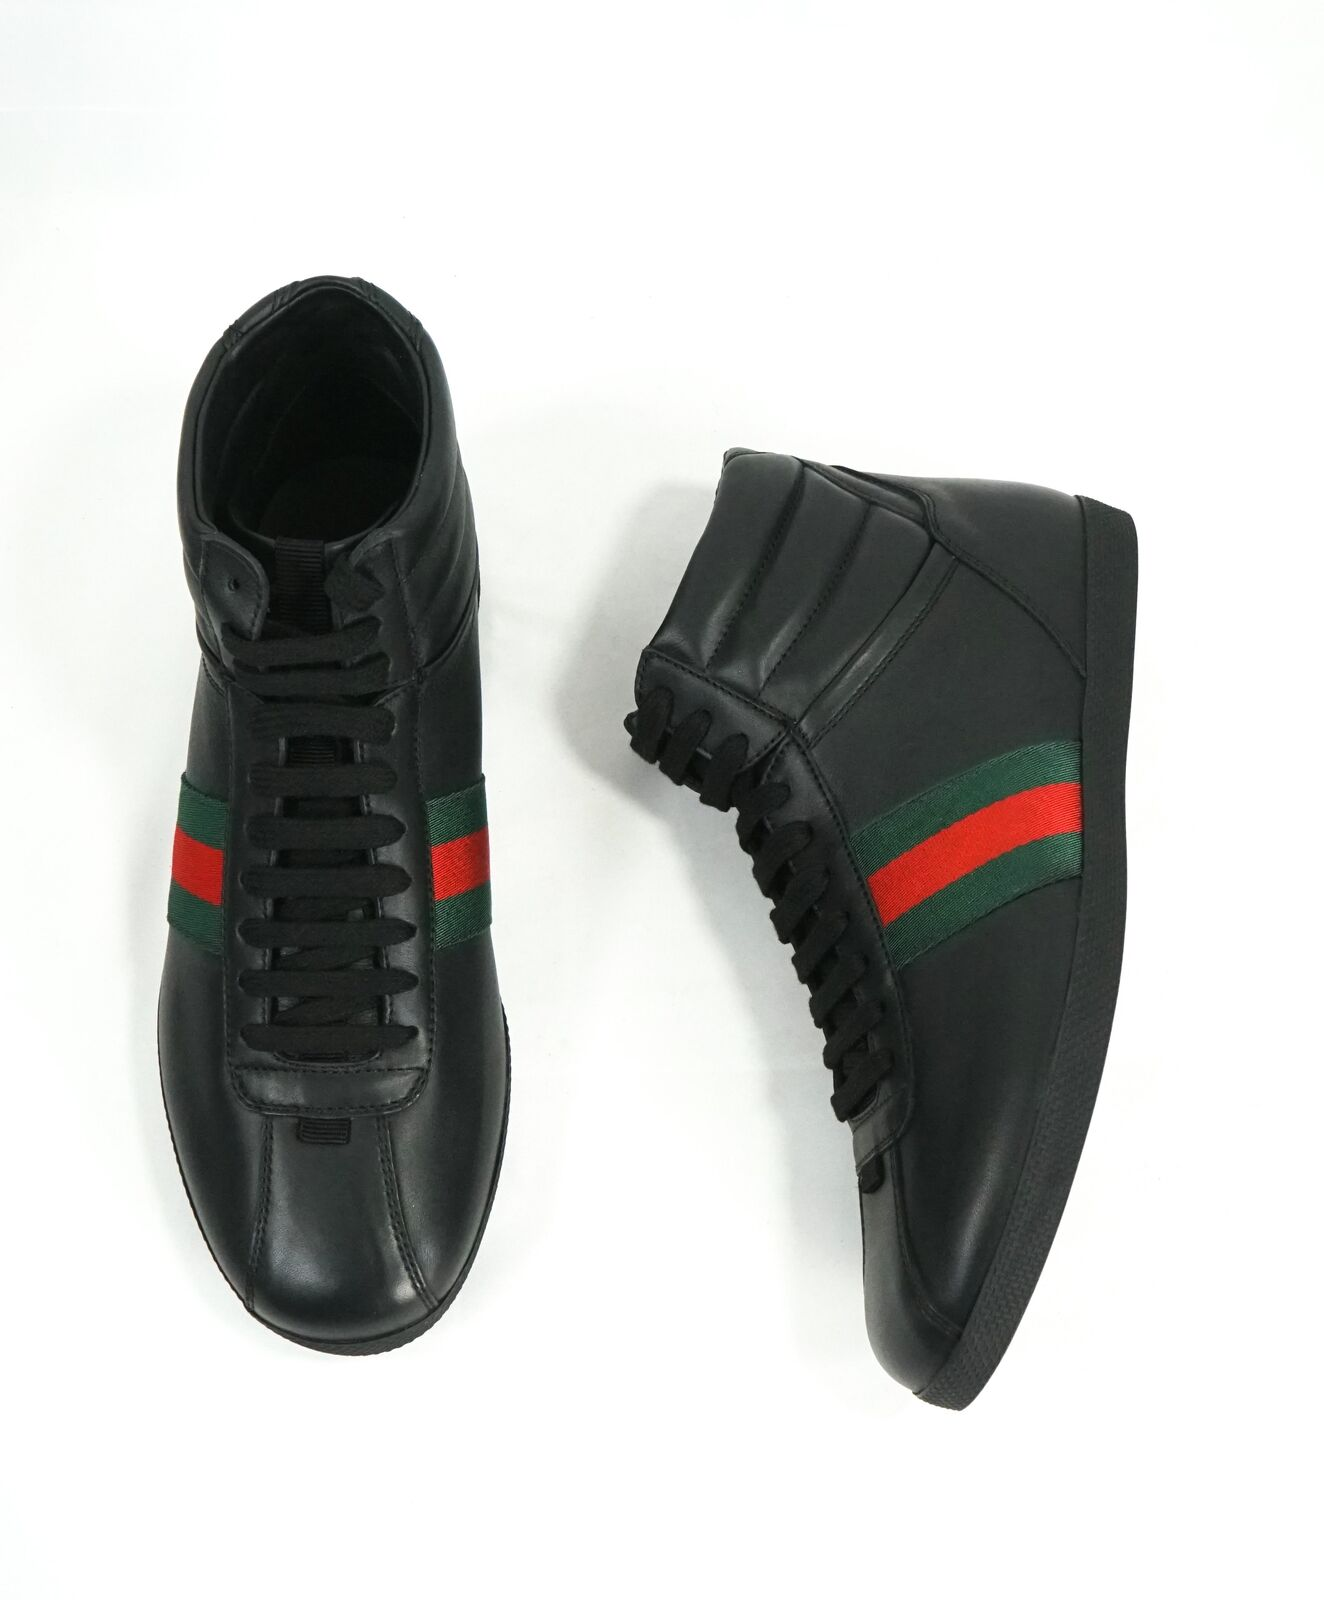 $700 GUCCI -Red and Green Logo Stripe GG High Top Black Sneakers - 6G / 6.5 US